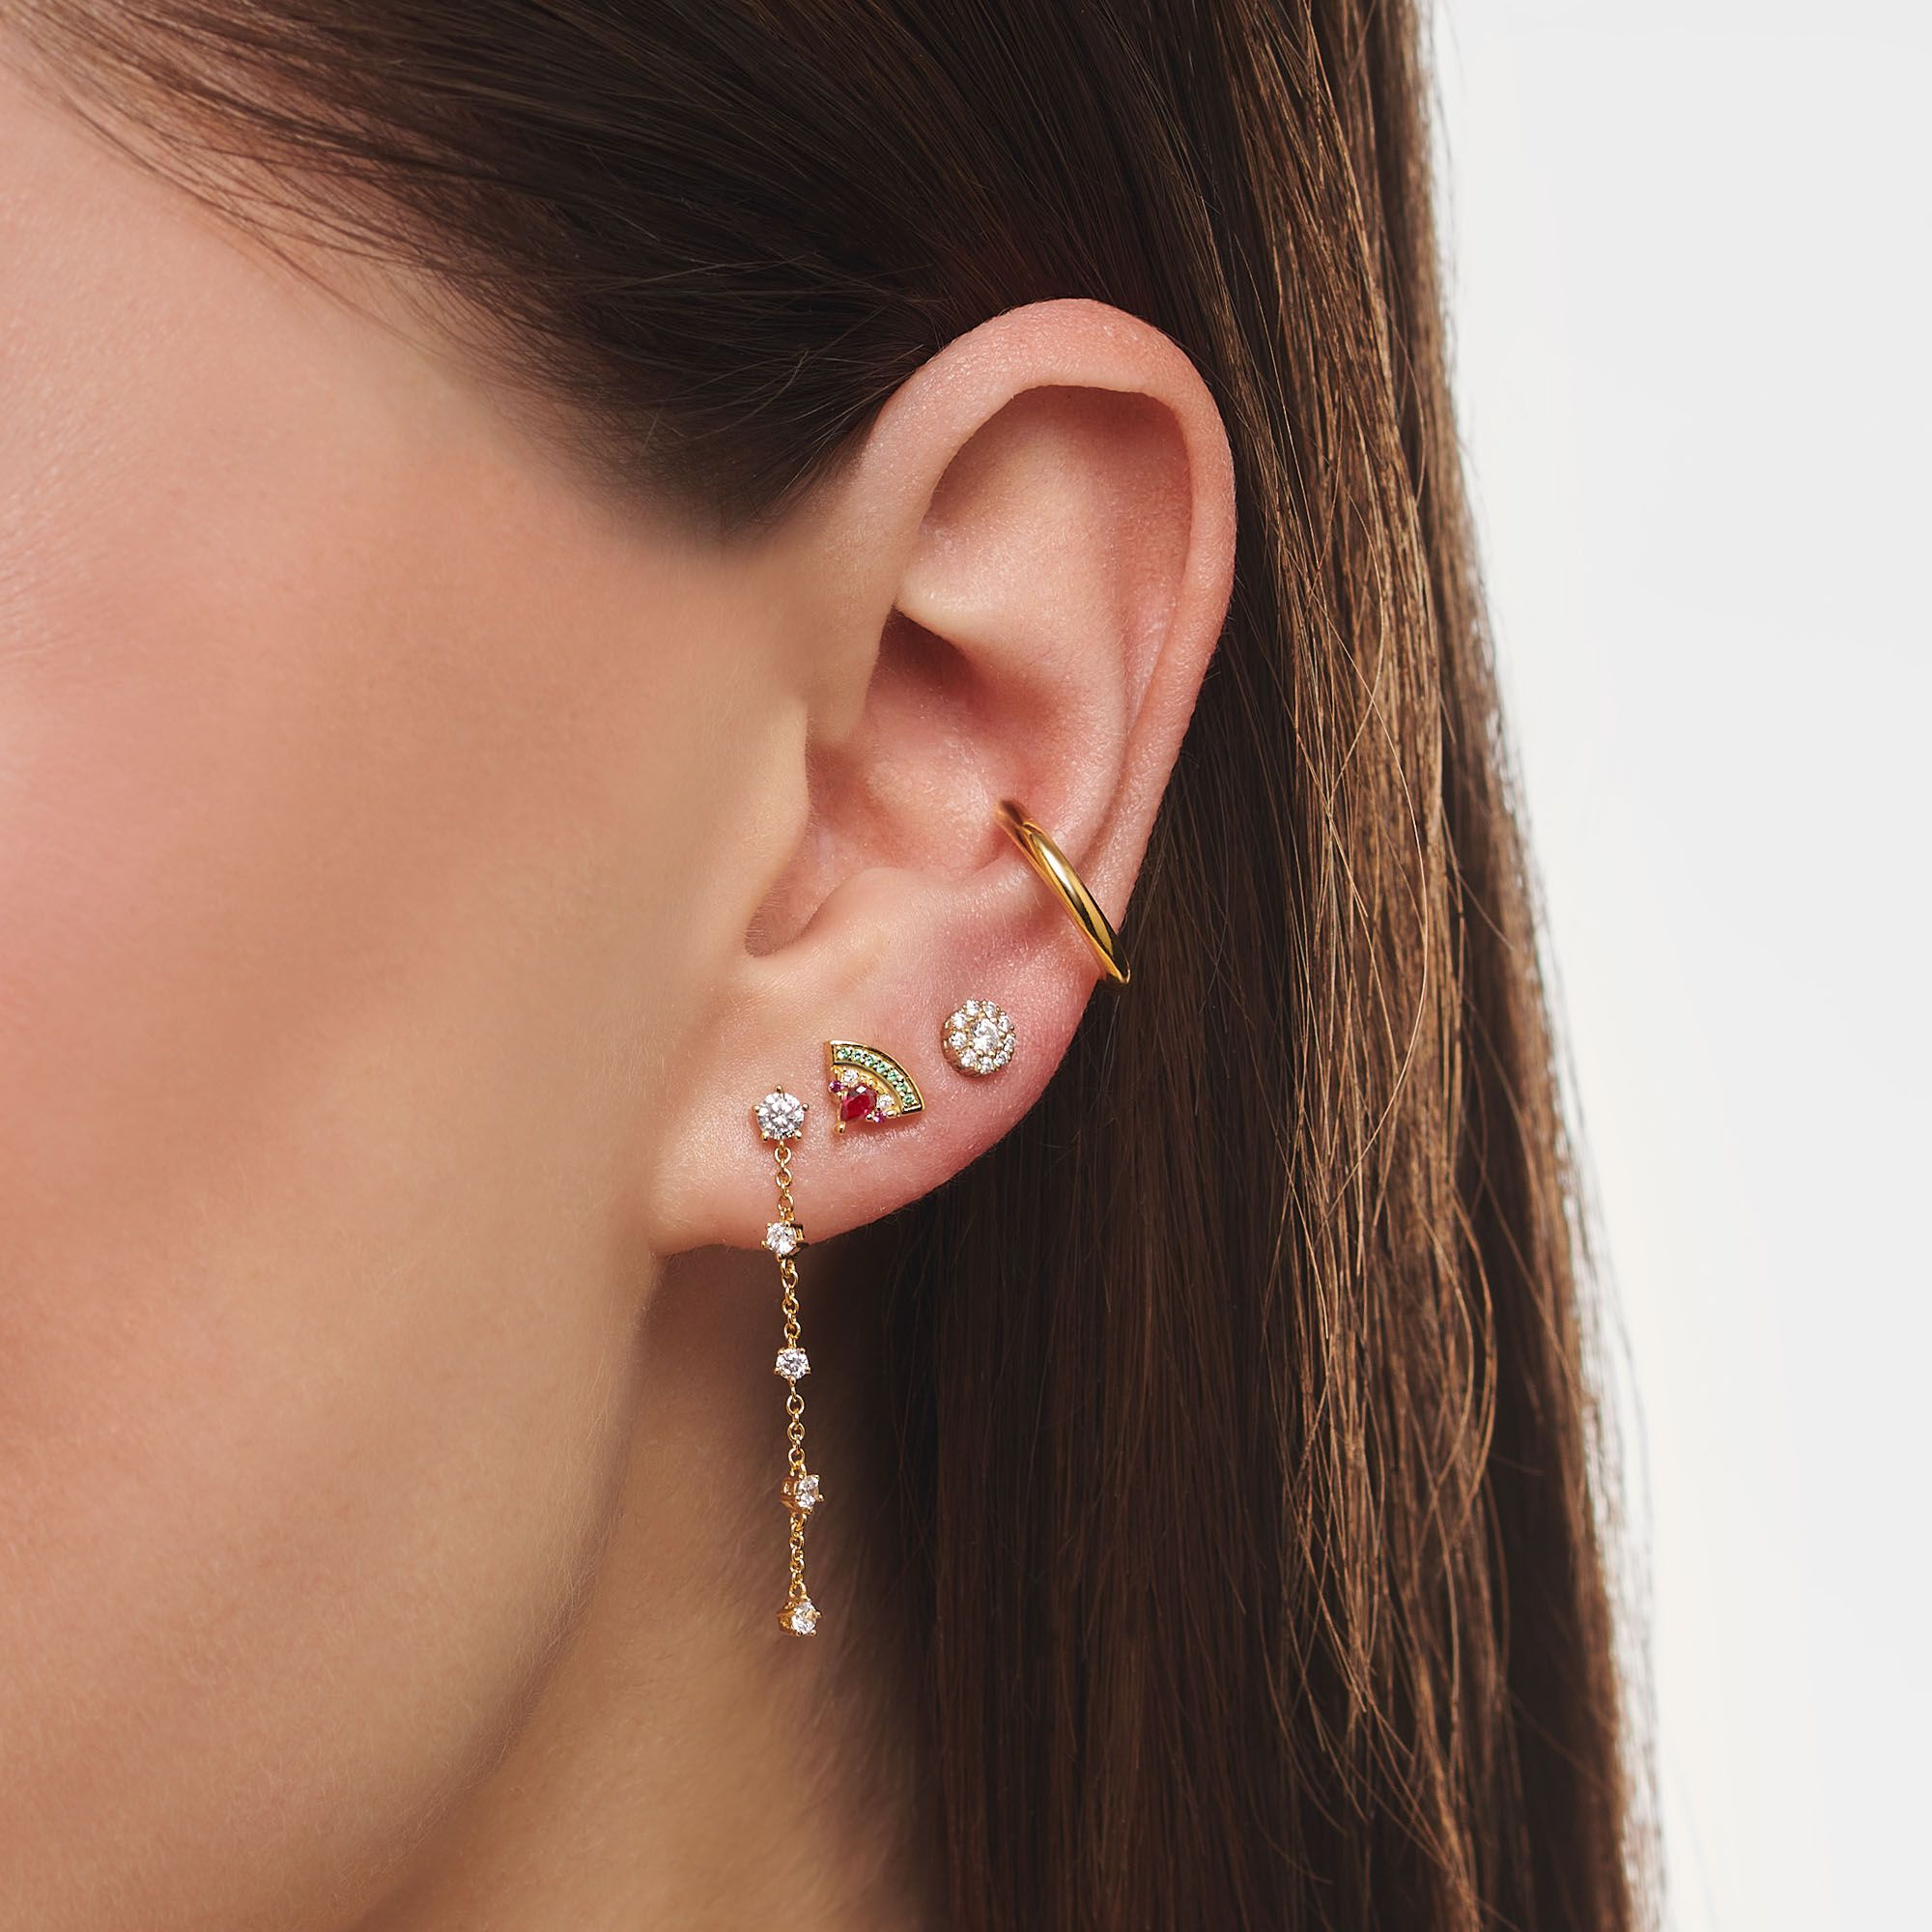 Thomas Sabo 18 karat yellow gold plated sterling silver plain ear cuff for non pierced ears.  Comes as a single earring